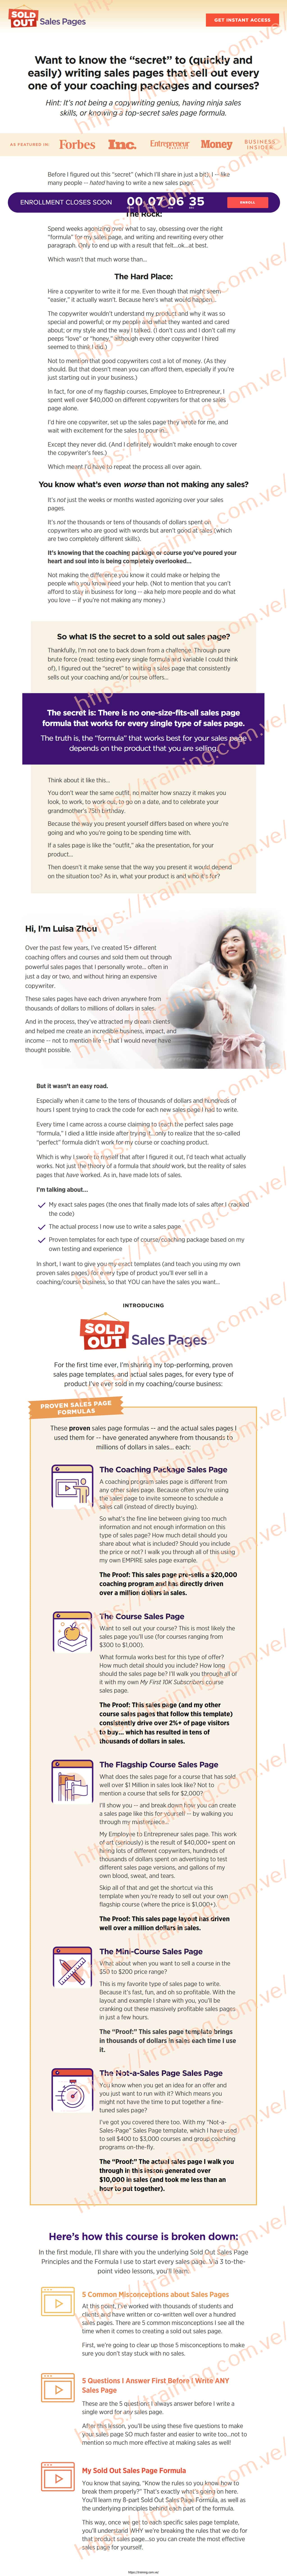 Sold Out Sales Page by Luisa Zhou Sale Page